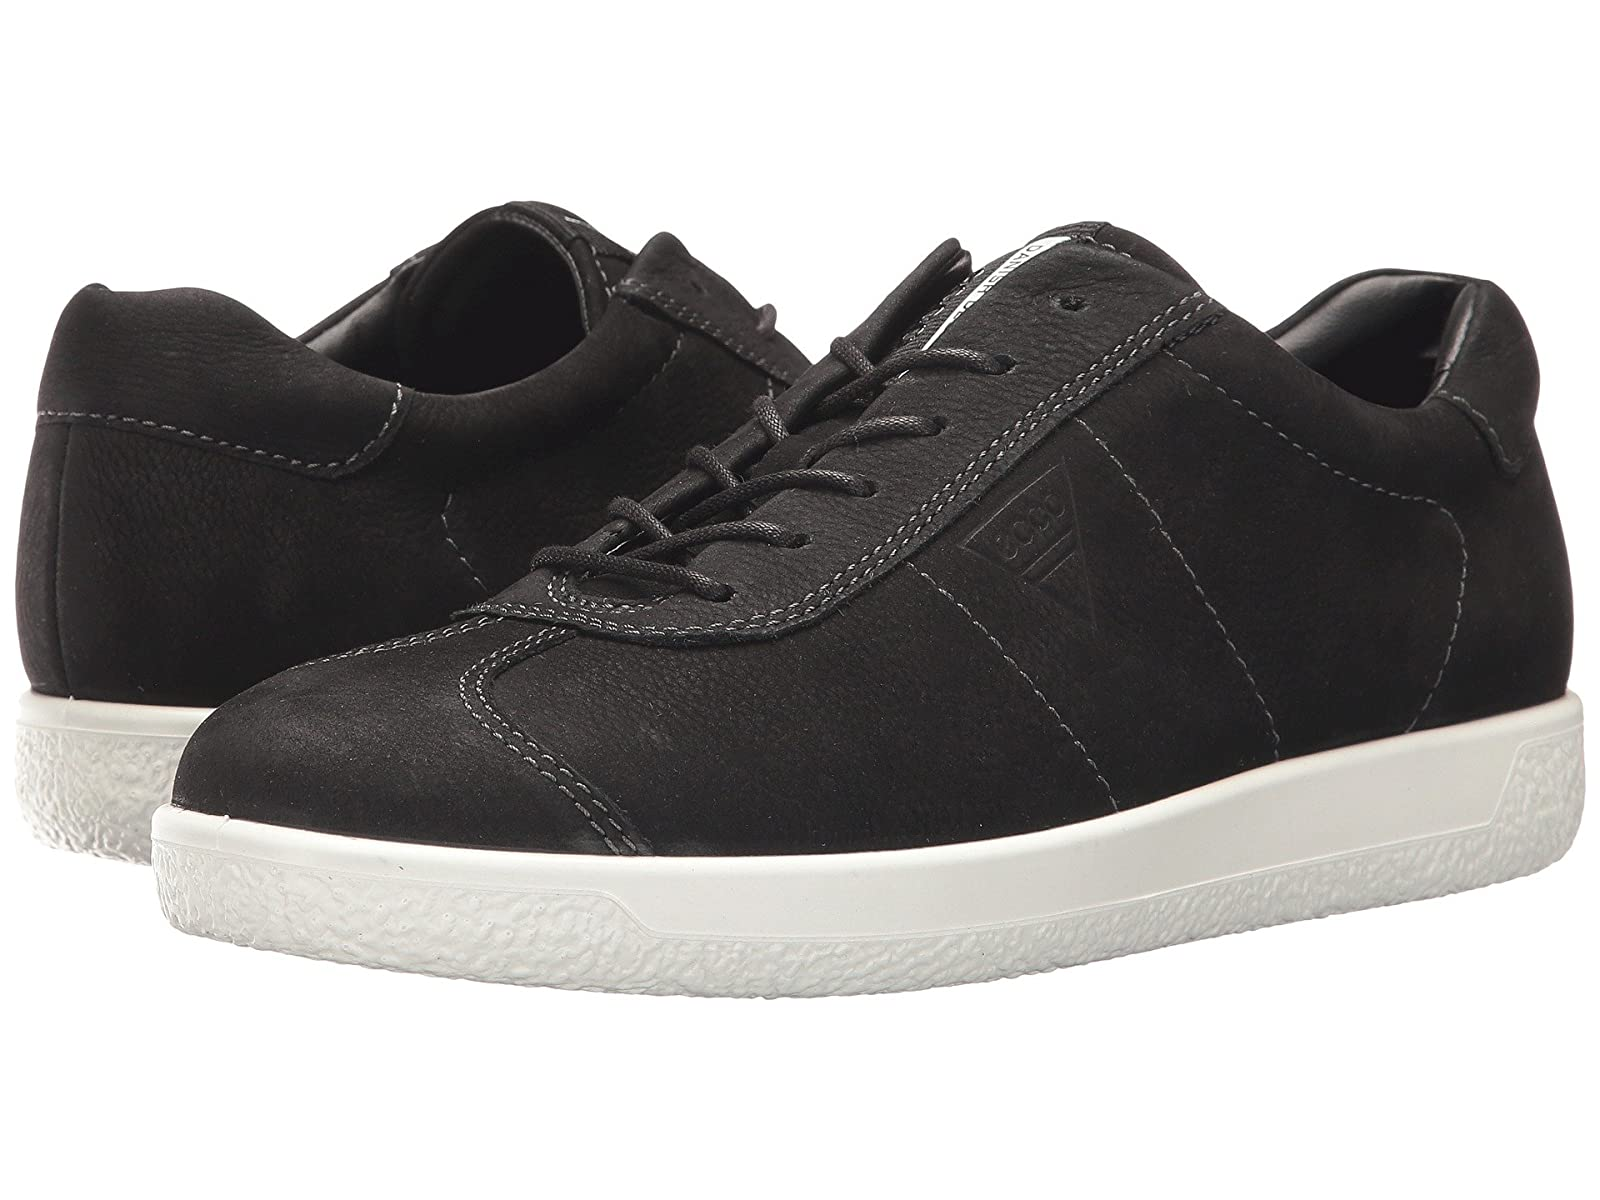 ECCO Soft 1 TieCheap and distinctive eye-catching shoes